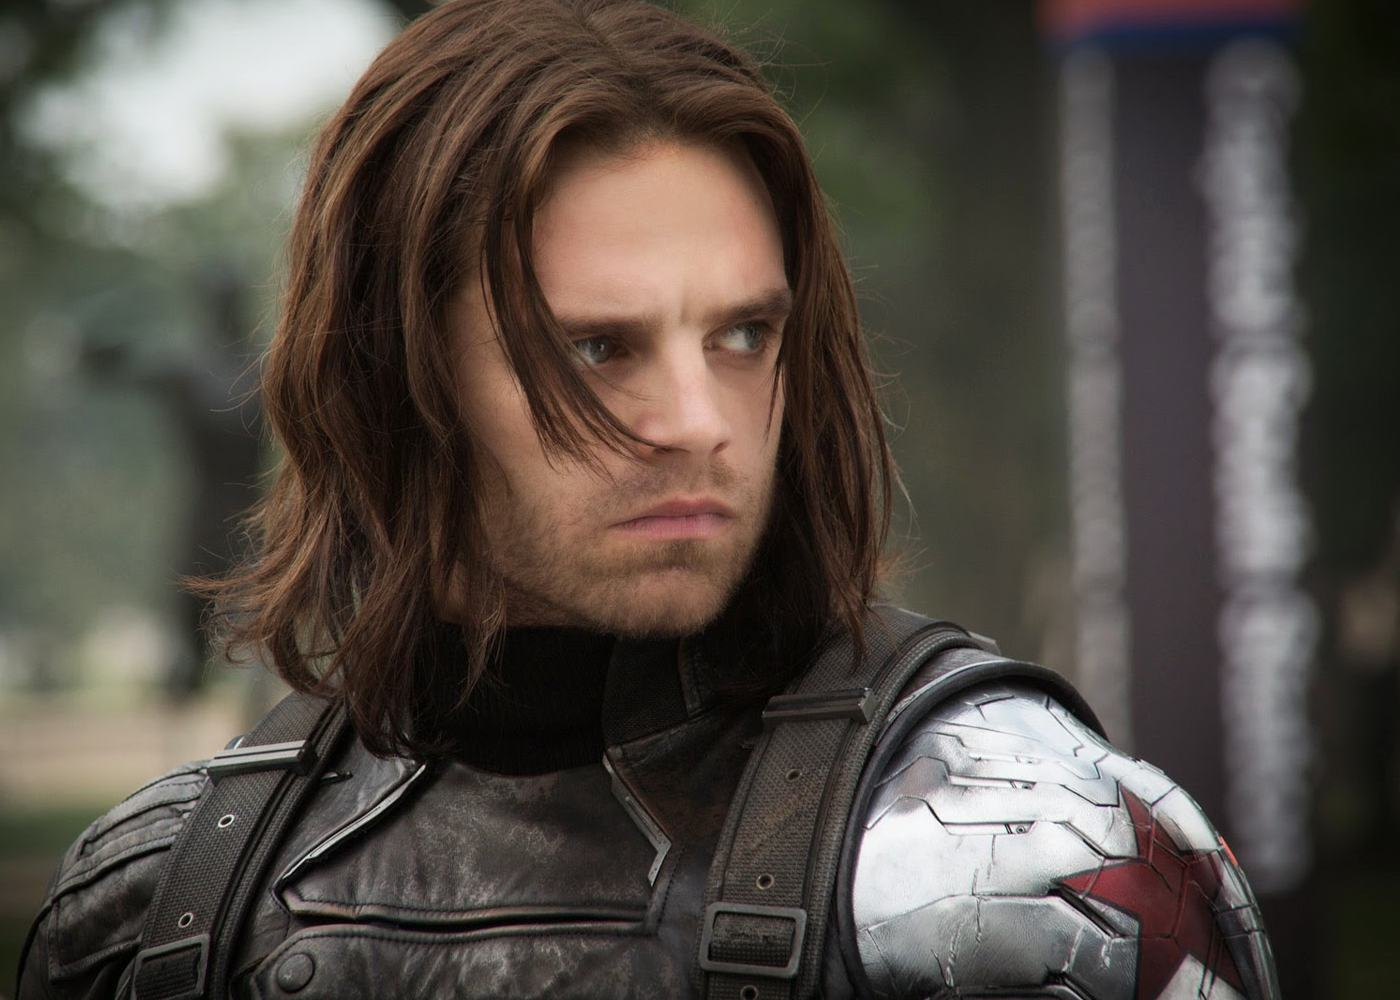 Winter Soldier Doesn't Have a Role in Black Panther